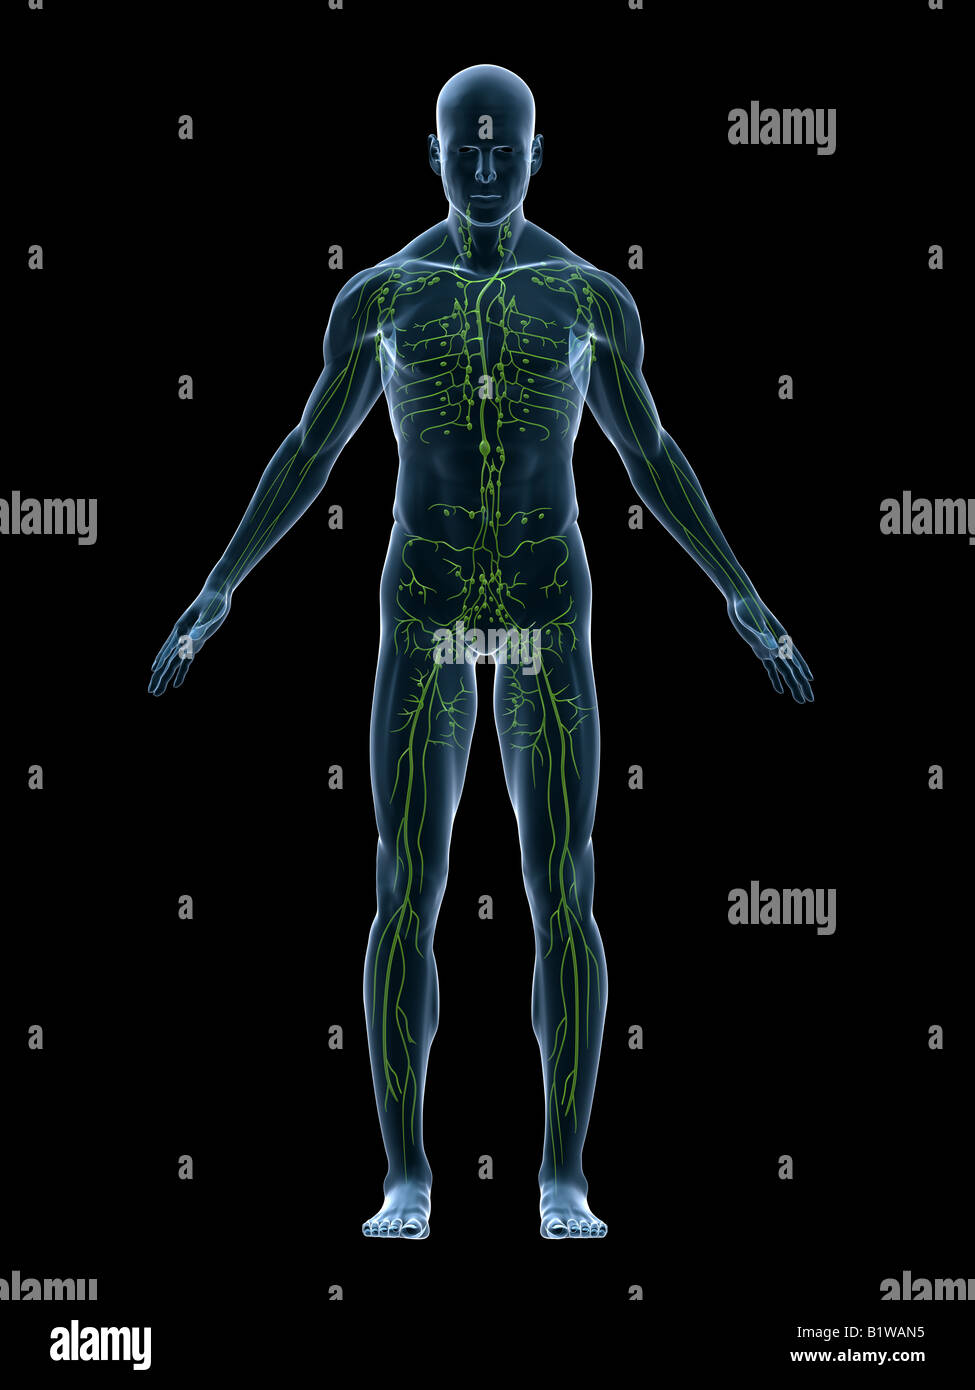 lymphatic system - Stock Image